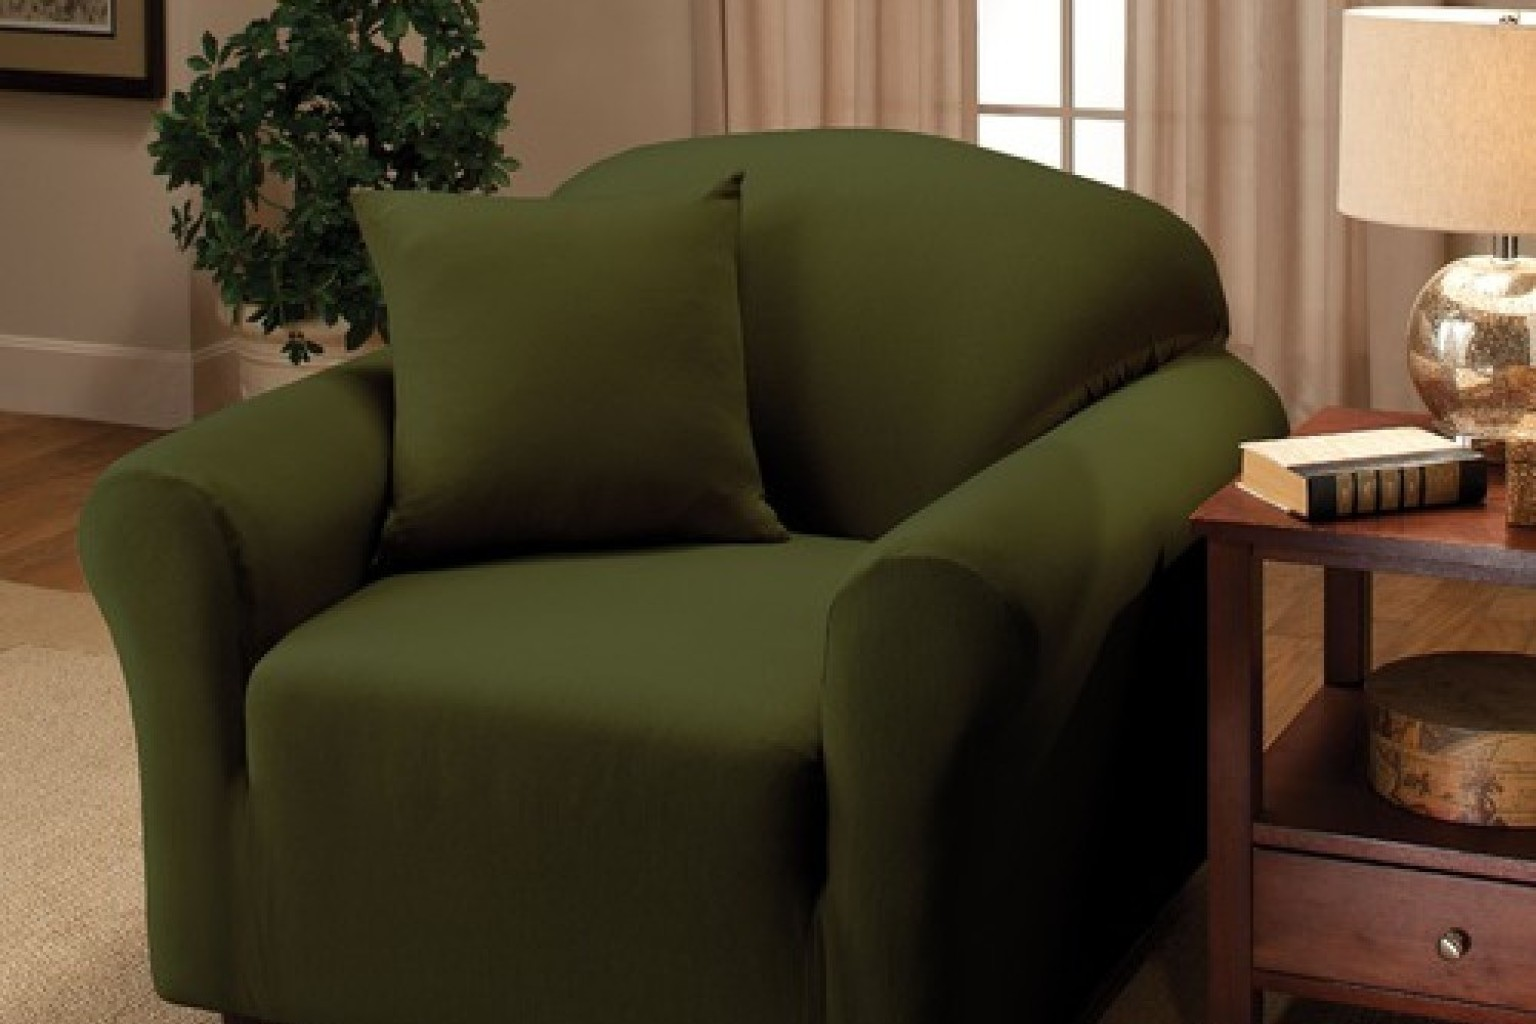 Ing Guide The Best Slipcovers To Give Your Sofa A Fresh Look For Fall Photos Huffpost